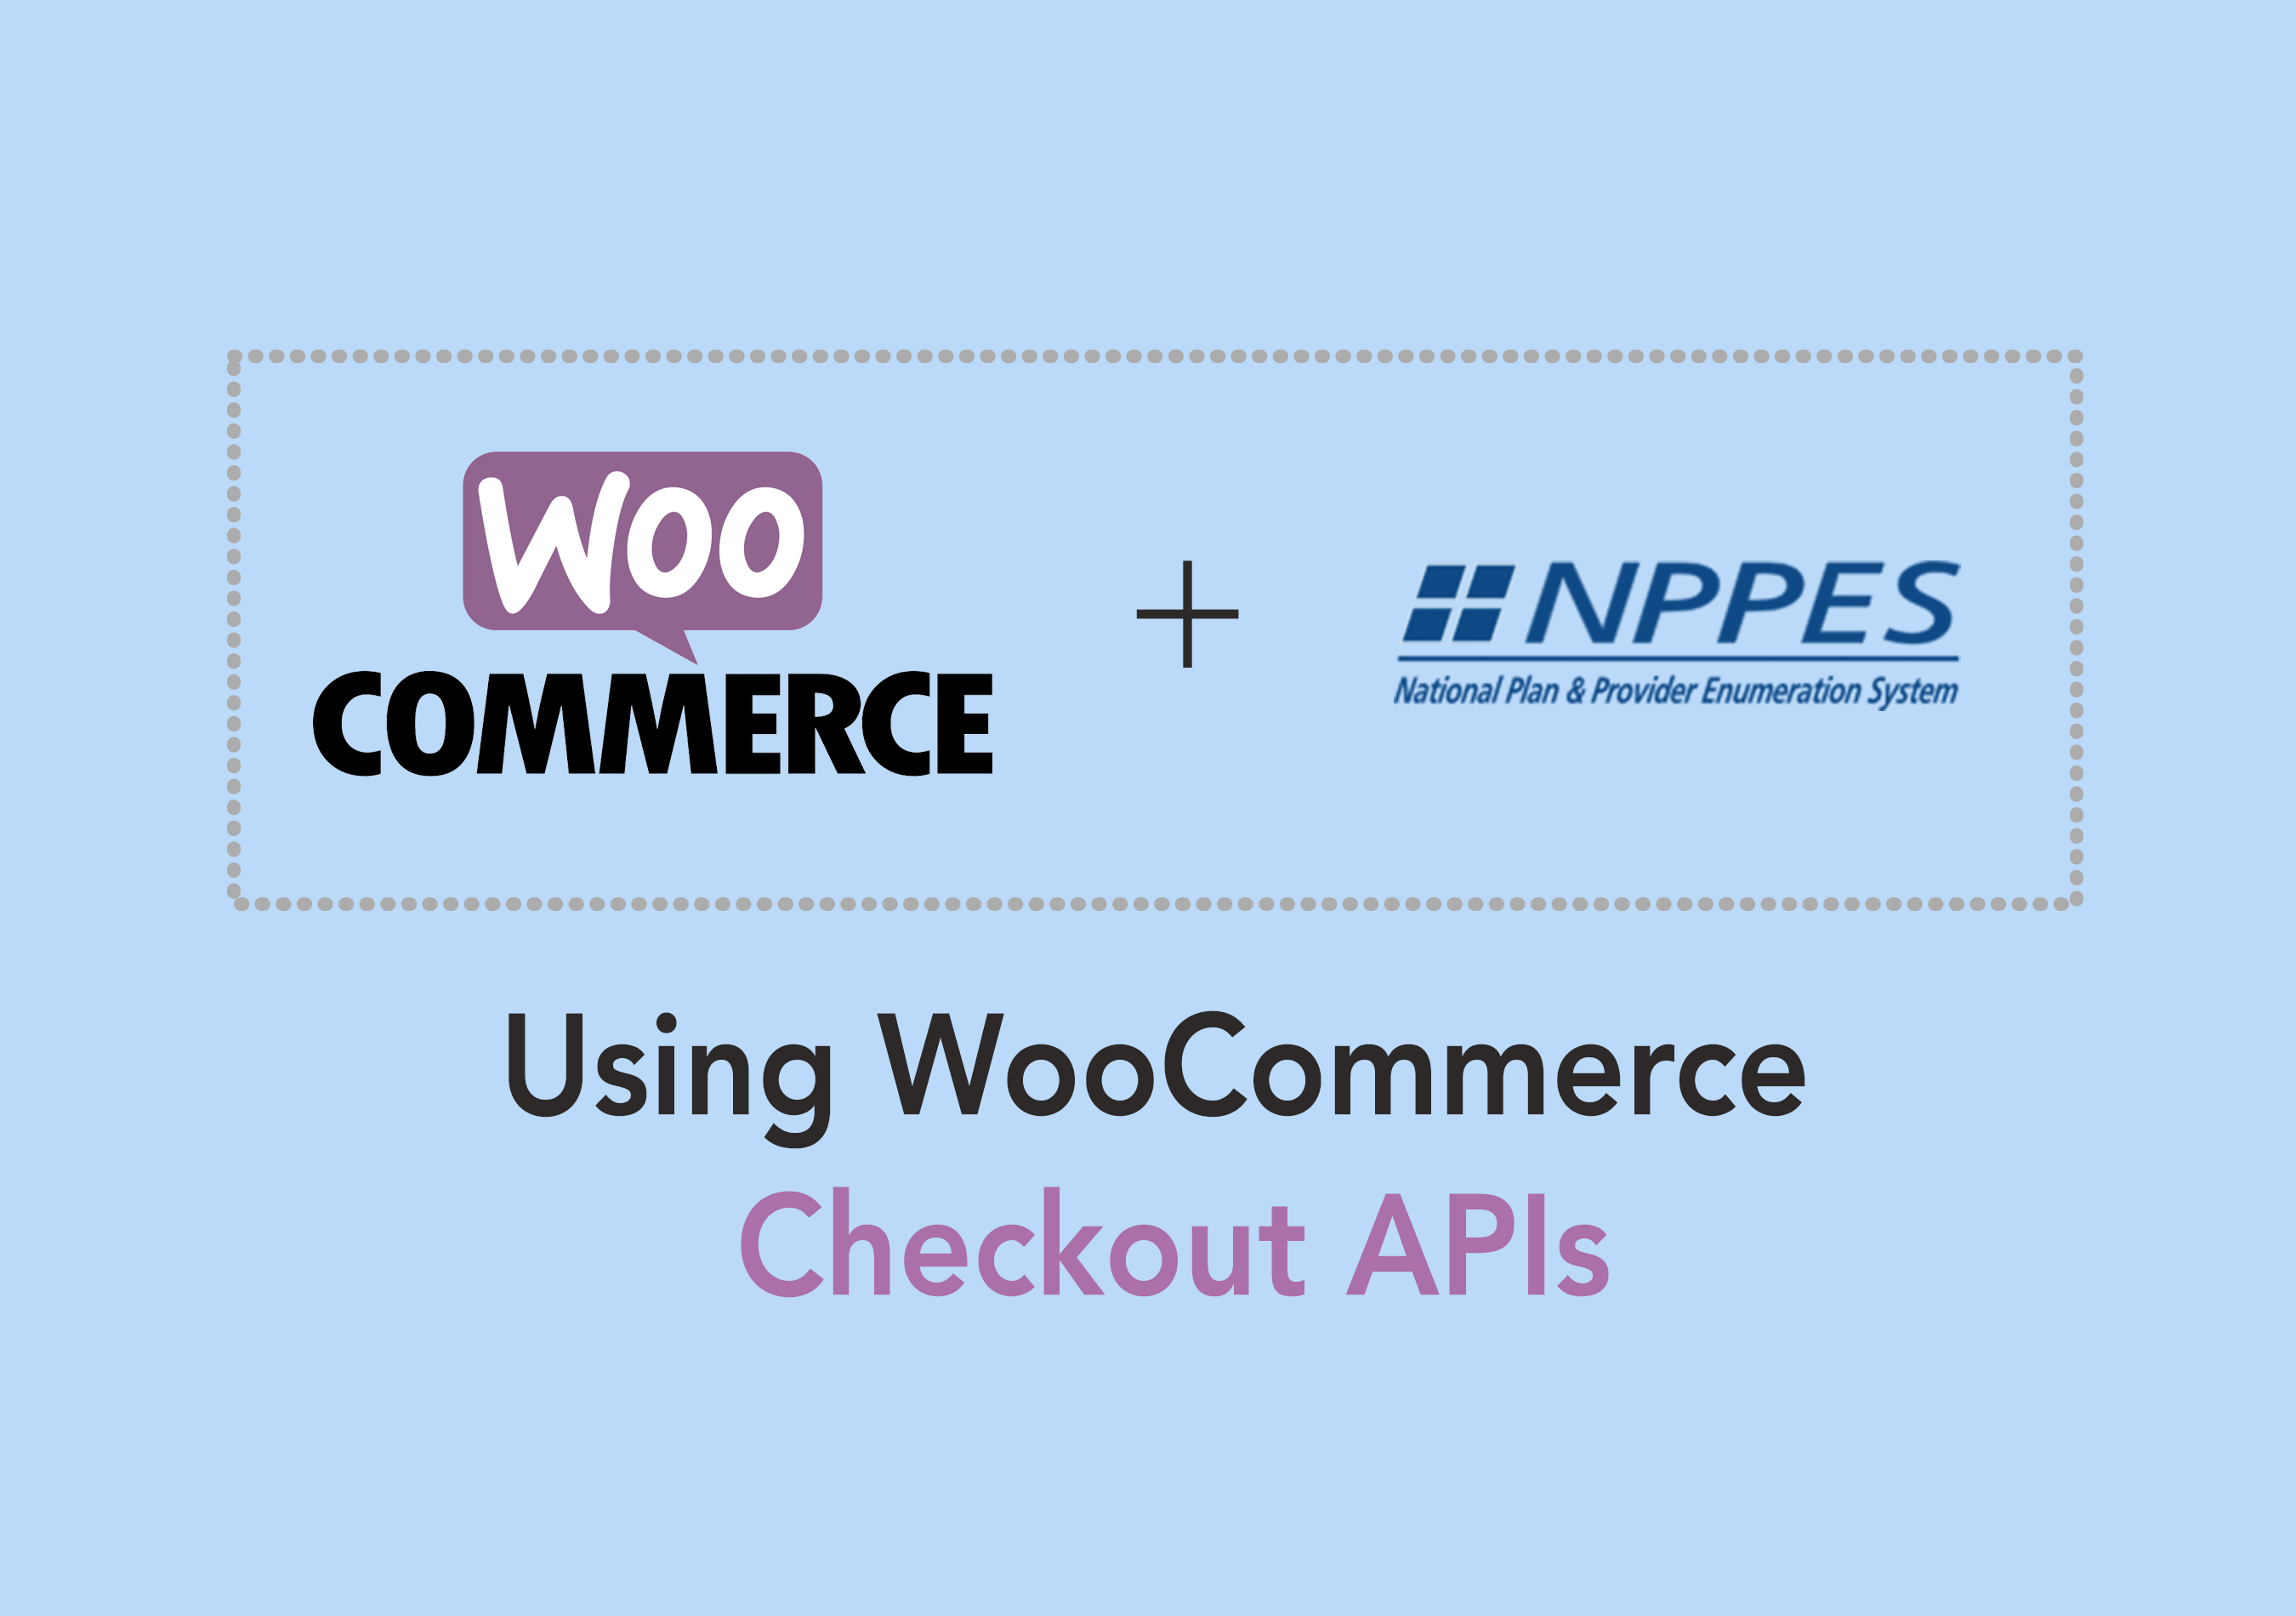 NPI Numbers with WooCommerce Checkout - NPPES